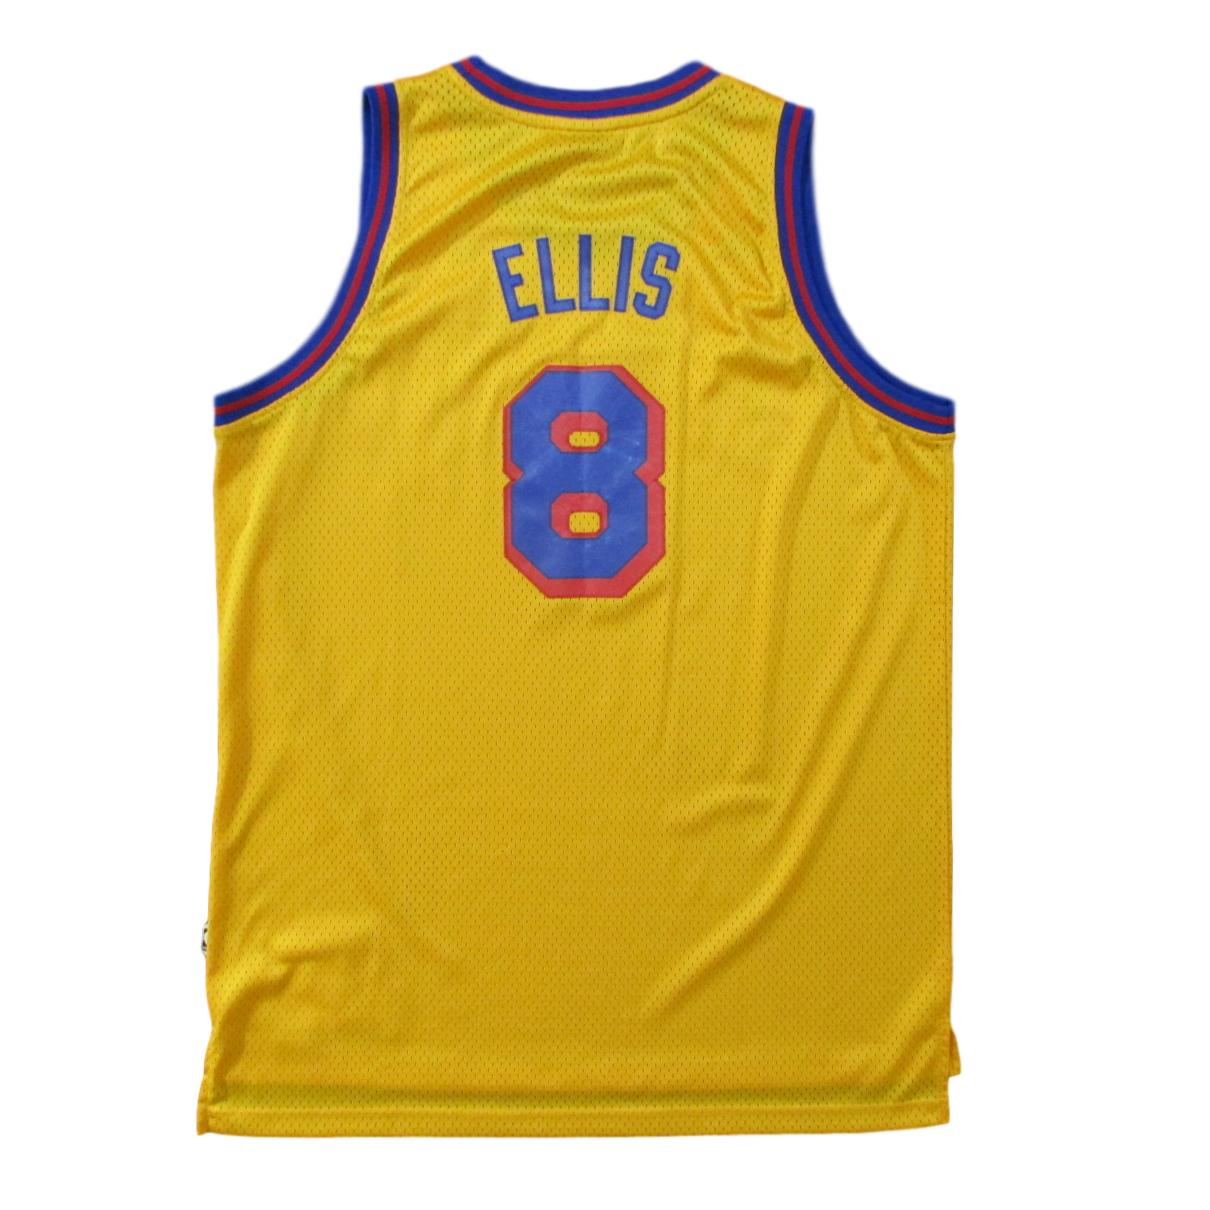 San Francisco Warriors Monta Ellis Basketball Jersey Adidas Sz XXL